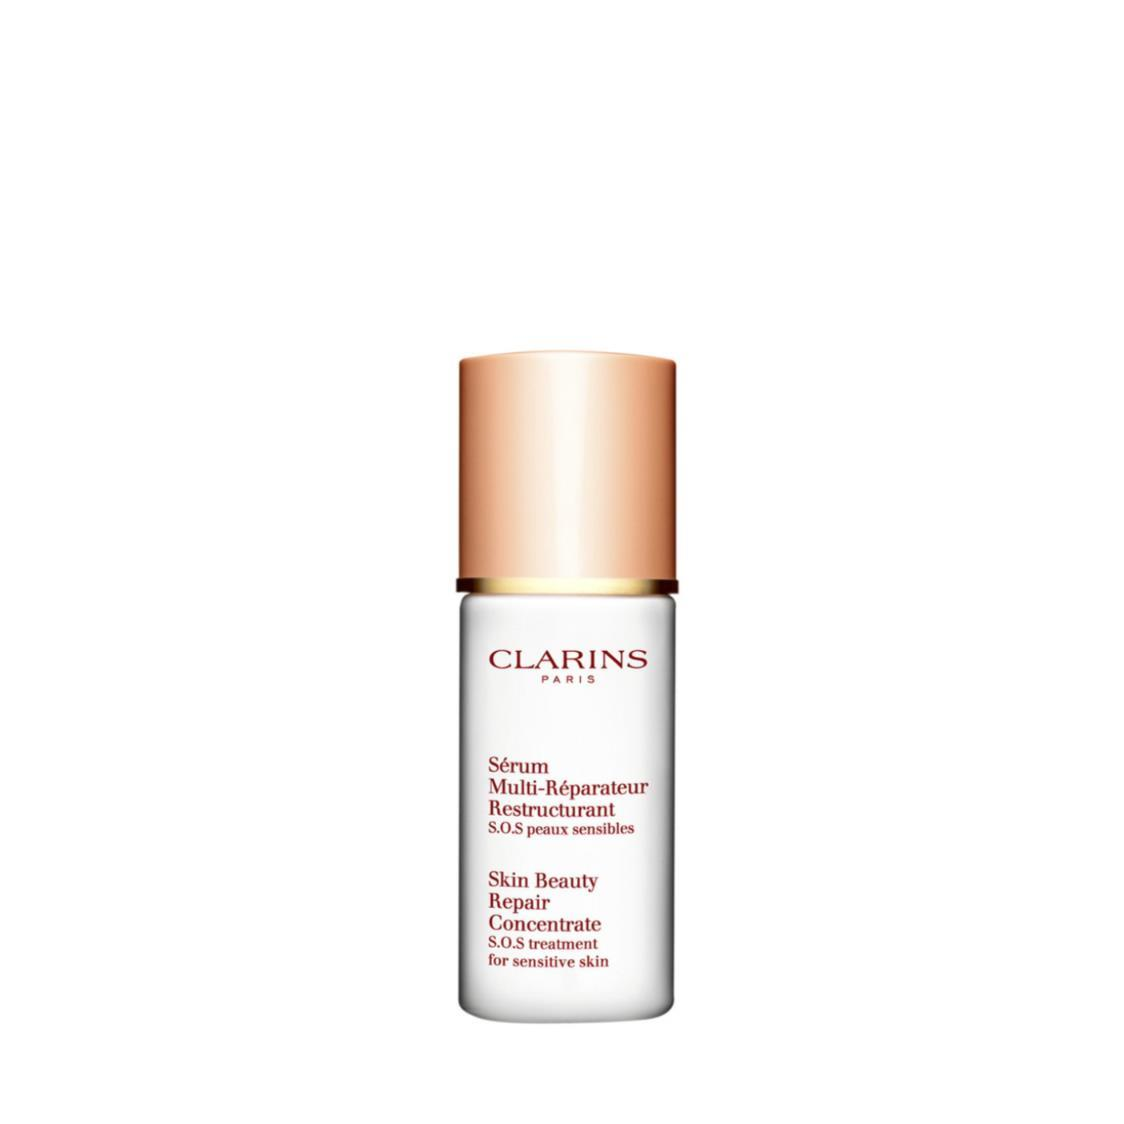 Clarins Skin Beauty Repair Concentrate 15ml